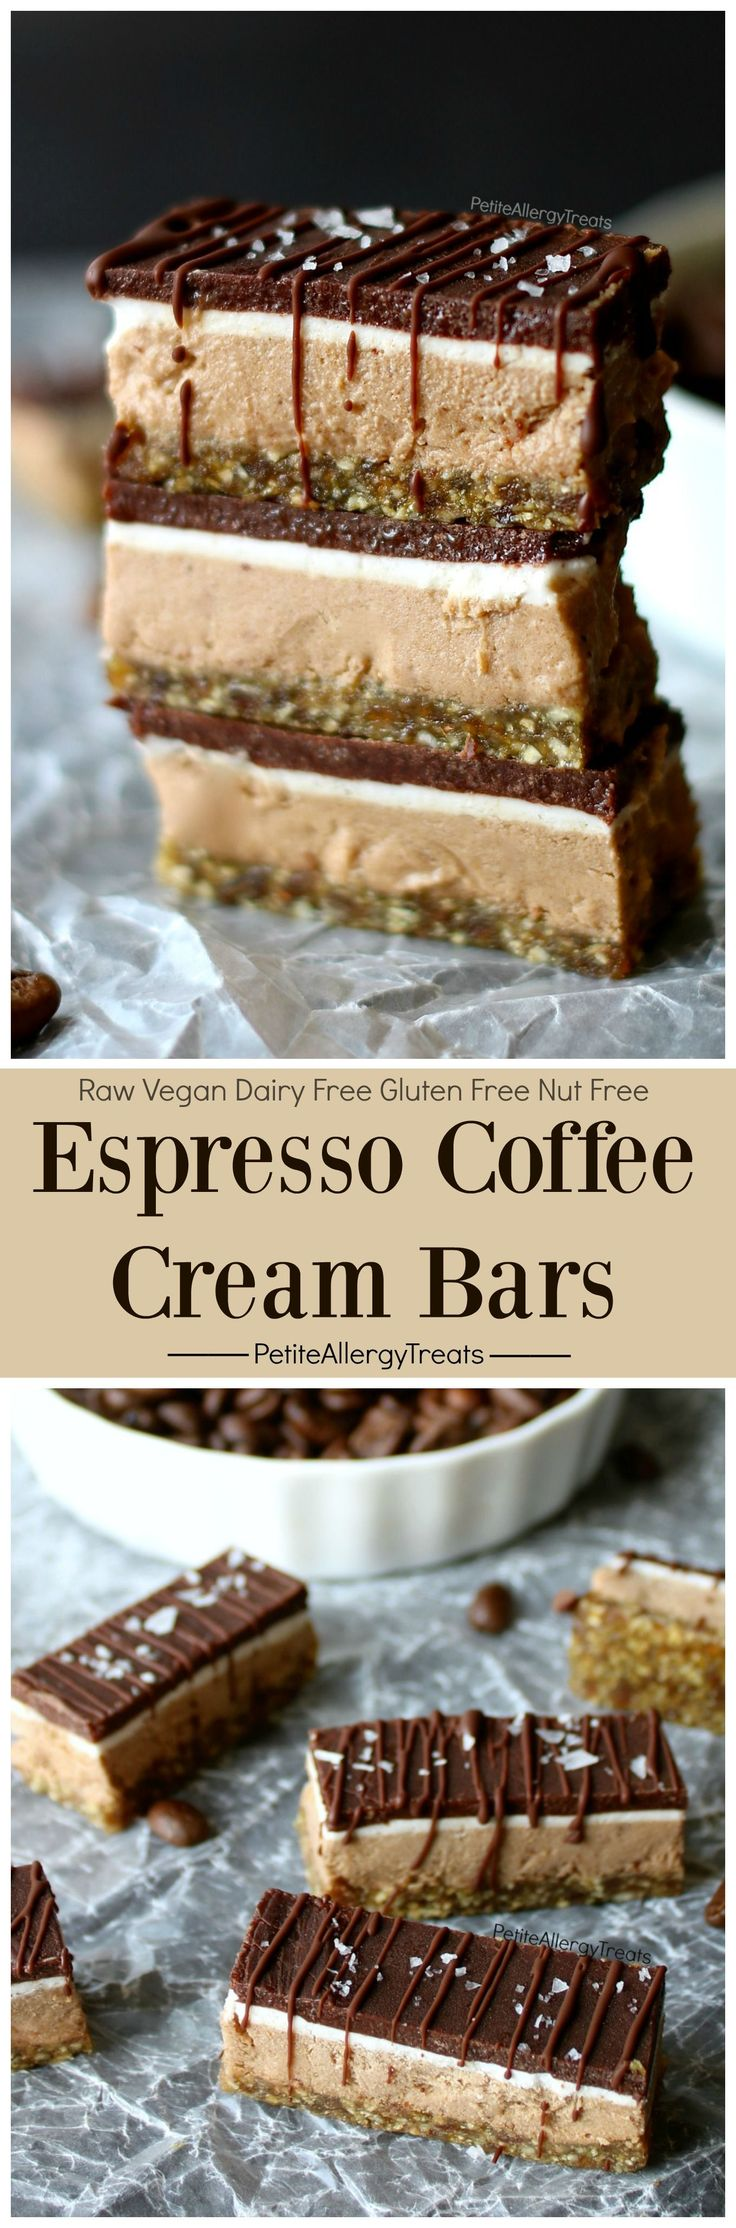 Raw Espresso Coffee Cream Bars Recipe (Dairy Free Vegan Raw)- Creamy chocolate energy filled gluten free nut free bar. Food allergy friendly.